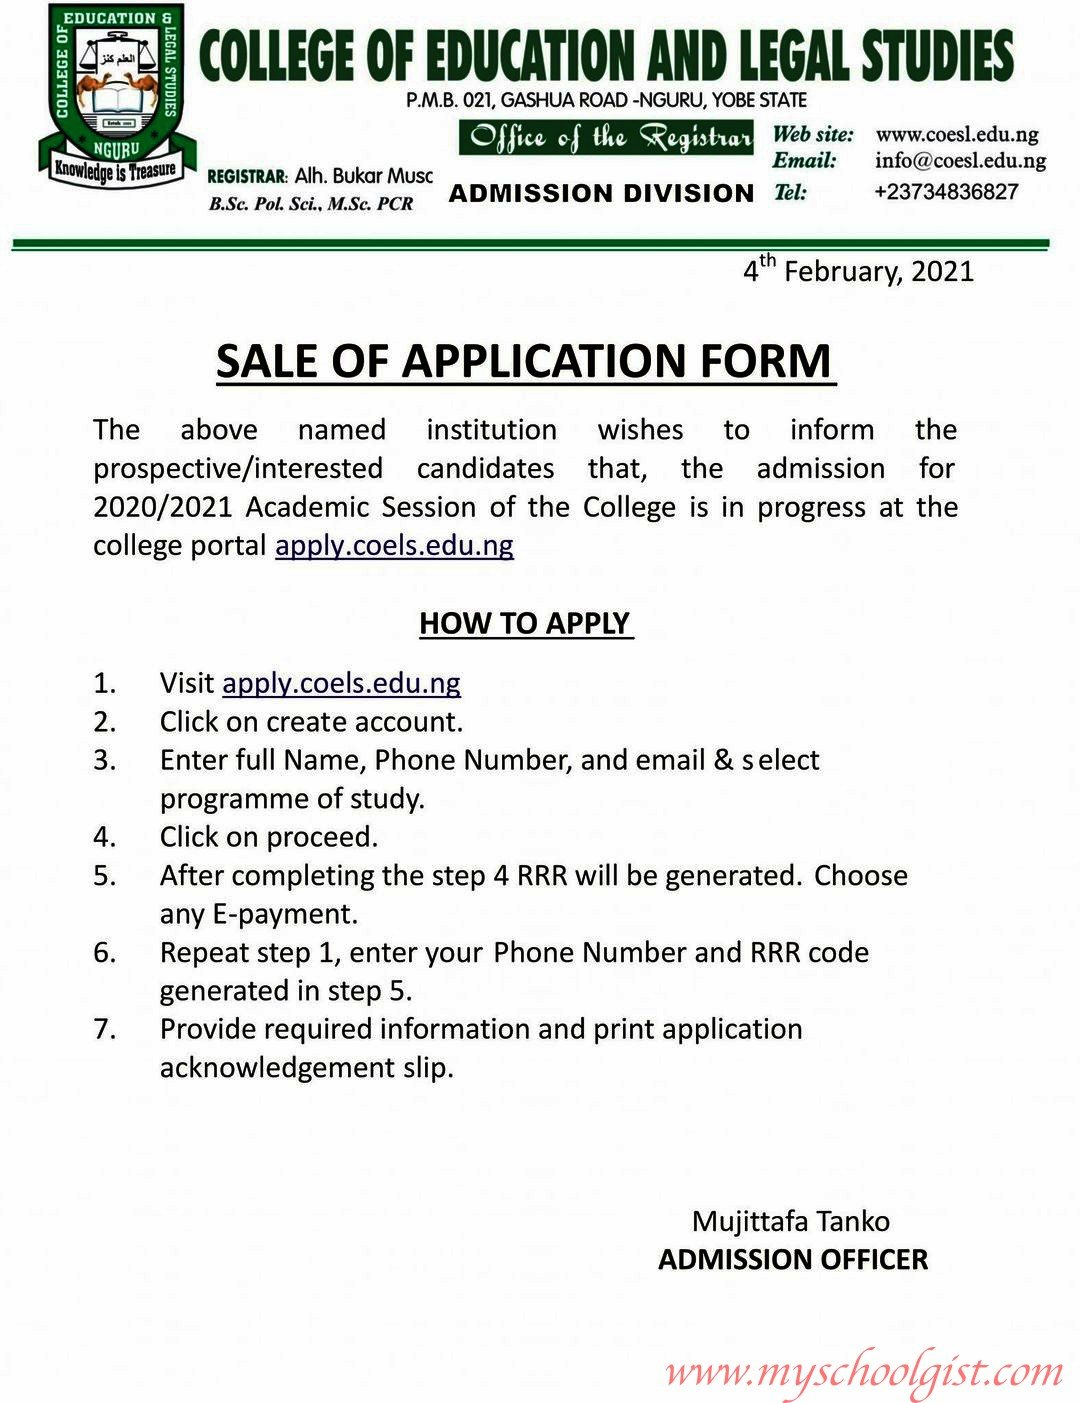 College of Education and Legal Studies, Nguru, Yobe State admission form 2020-2021